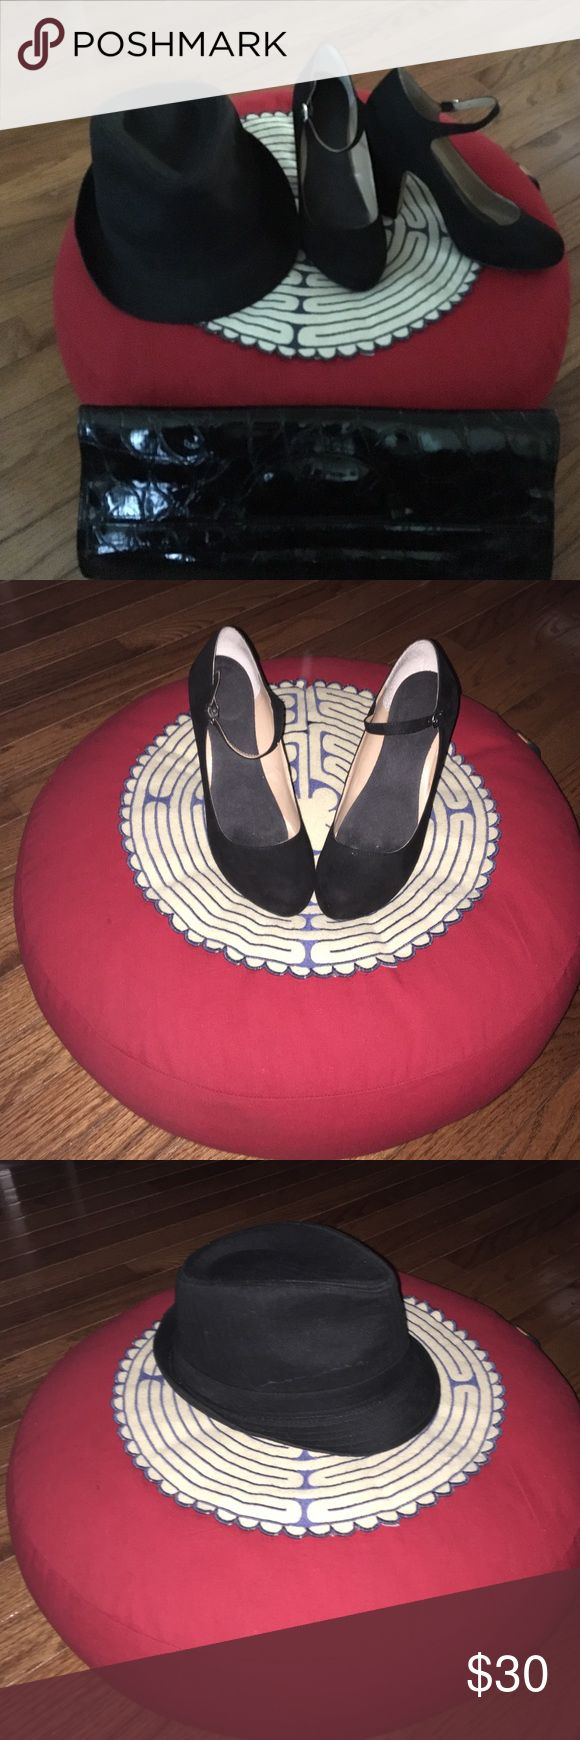 ✨ChUnKy✨Heel Mary Jane Pumps Suede Mary Janes have been used only a handful of times . Not even a year old. ✨Great Condition✨ with the exception of a minor knick on the left heel *Barely noticeable*. Make an offer! DSW Shoes Heels